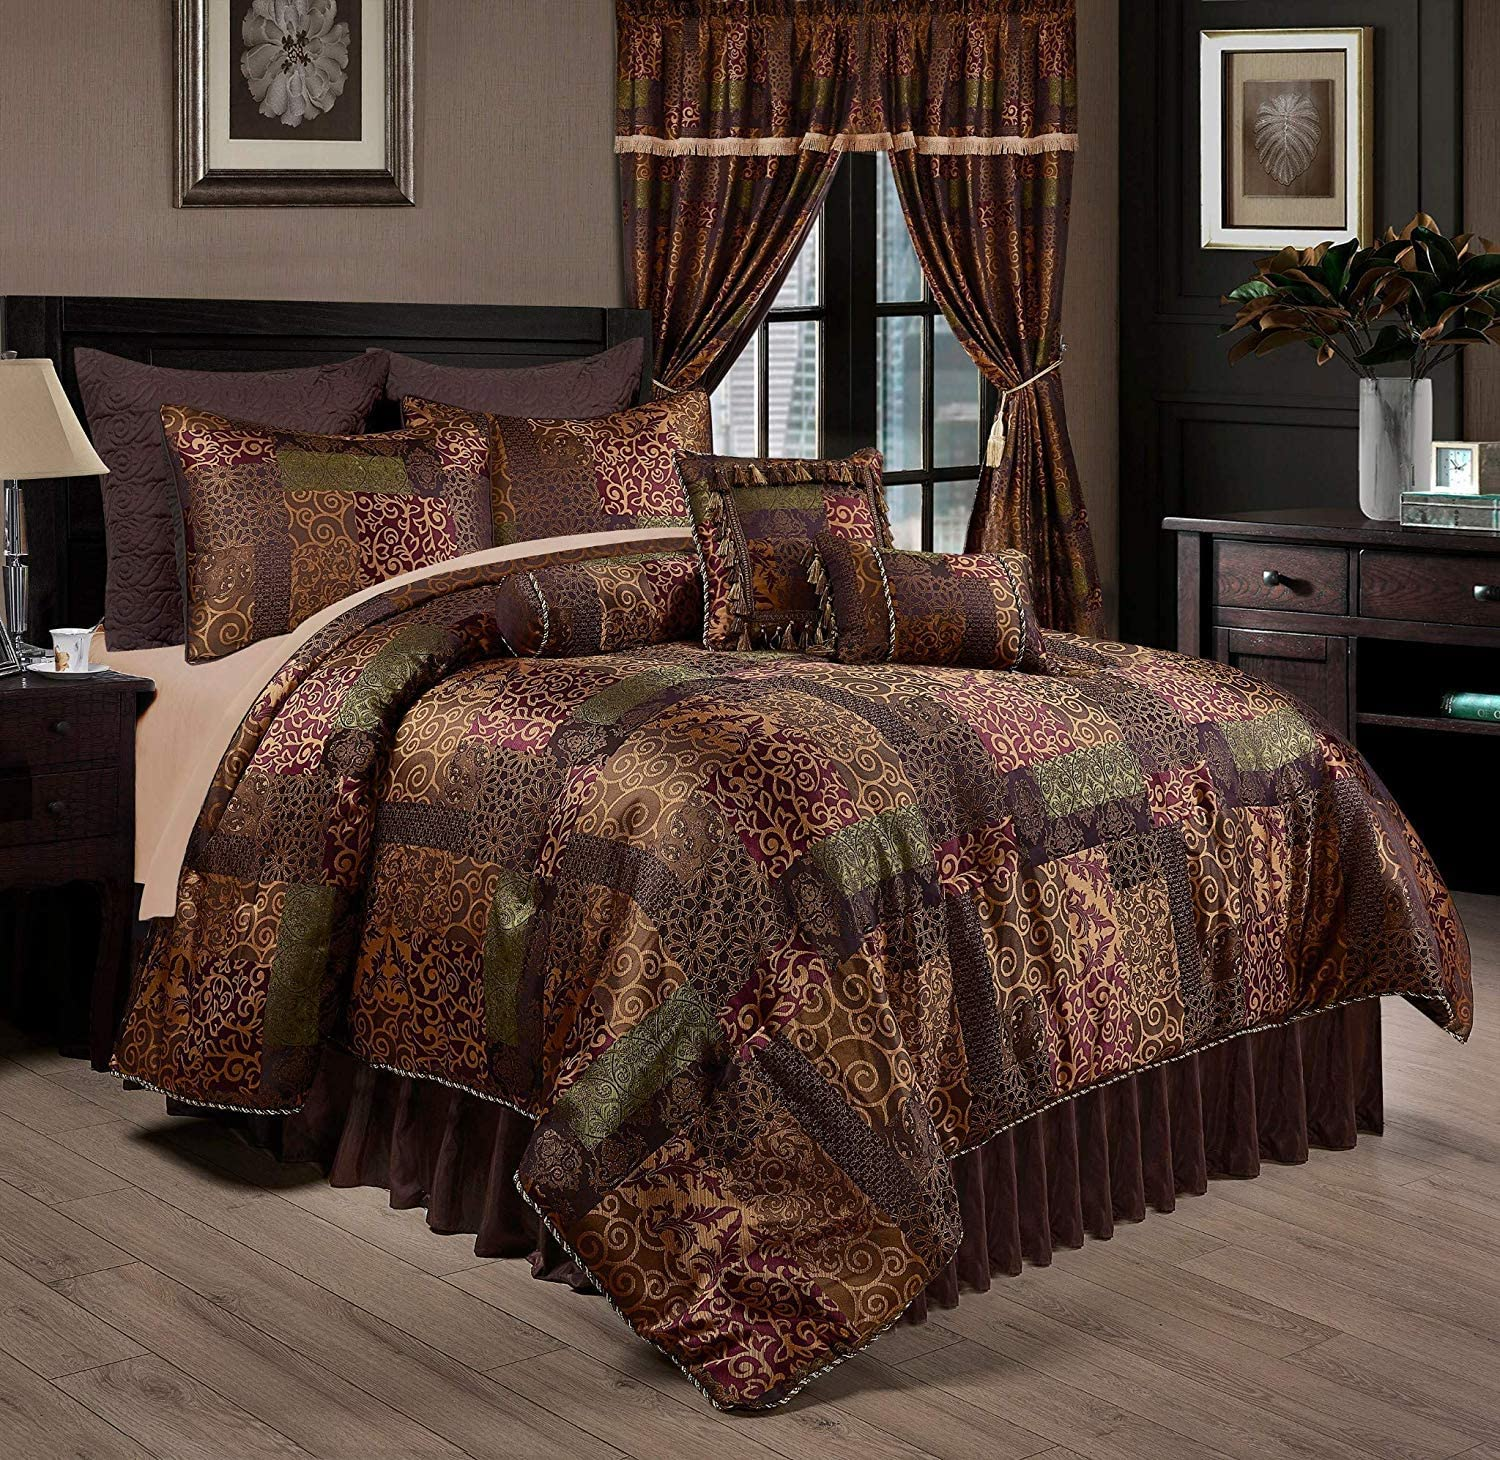 Chezmoi Collection Amelia 9-Piece Floral Jacquard Patchwork Comforter Set, King